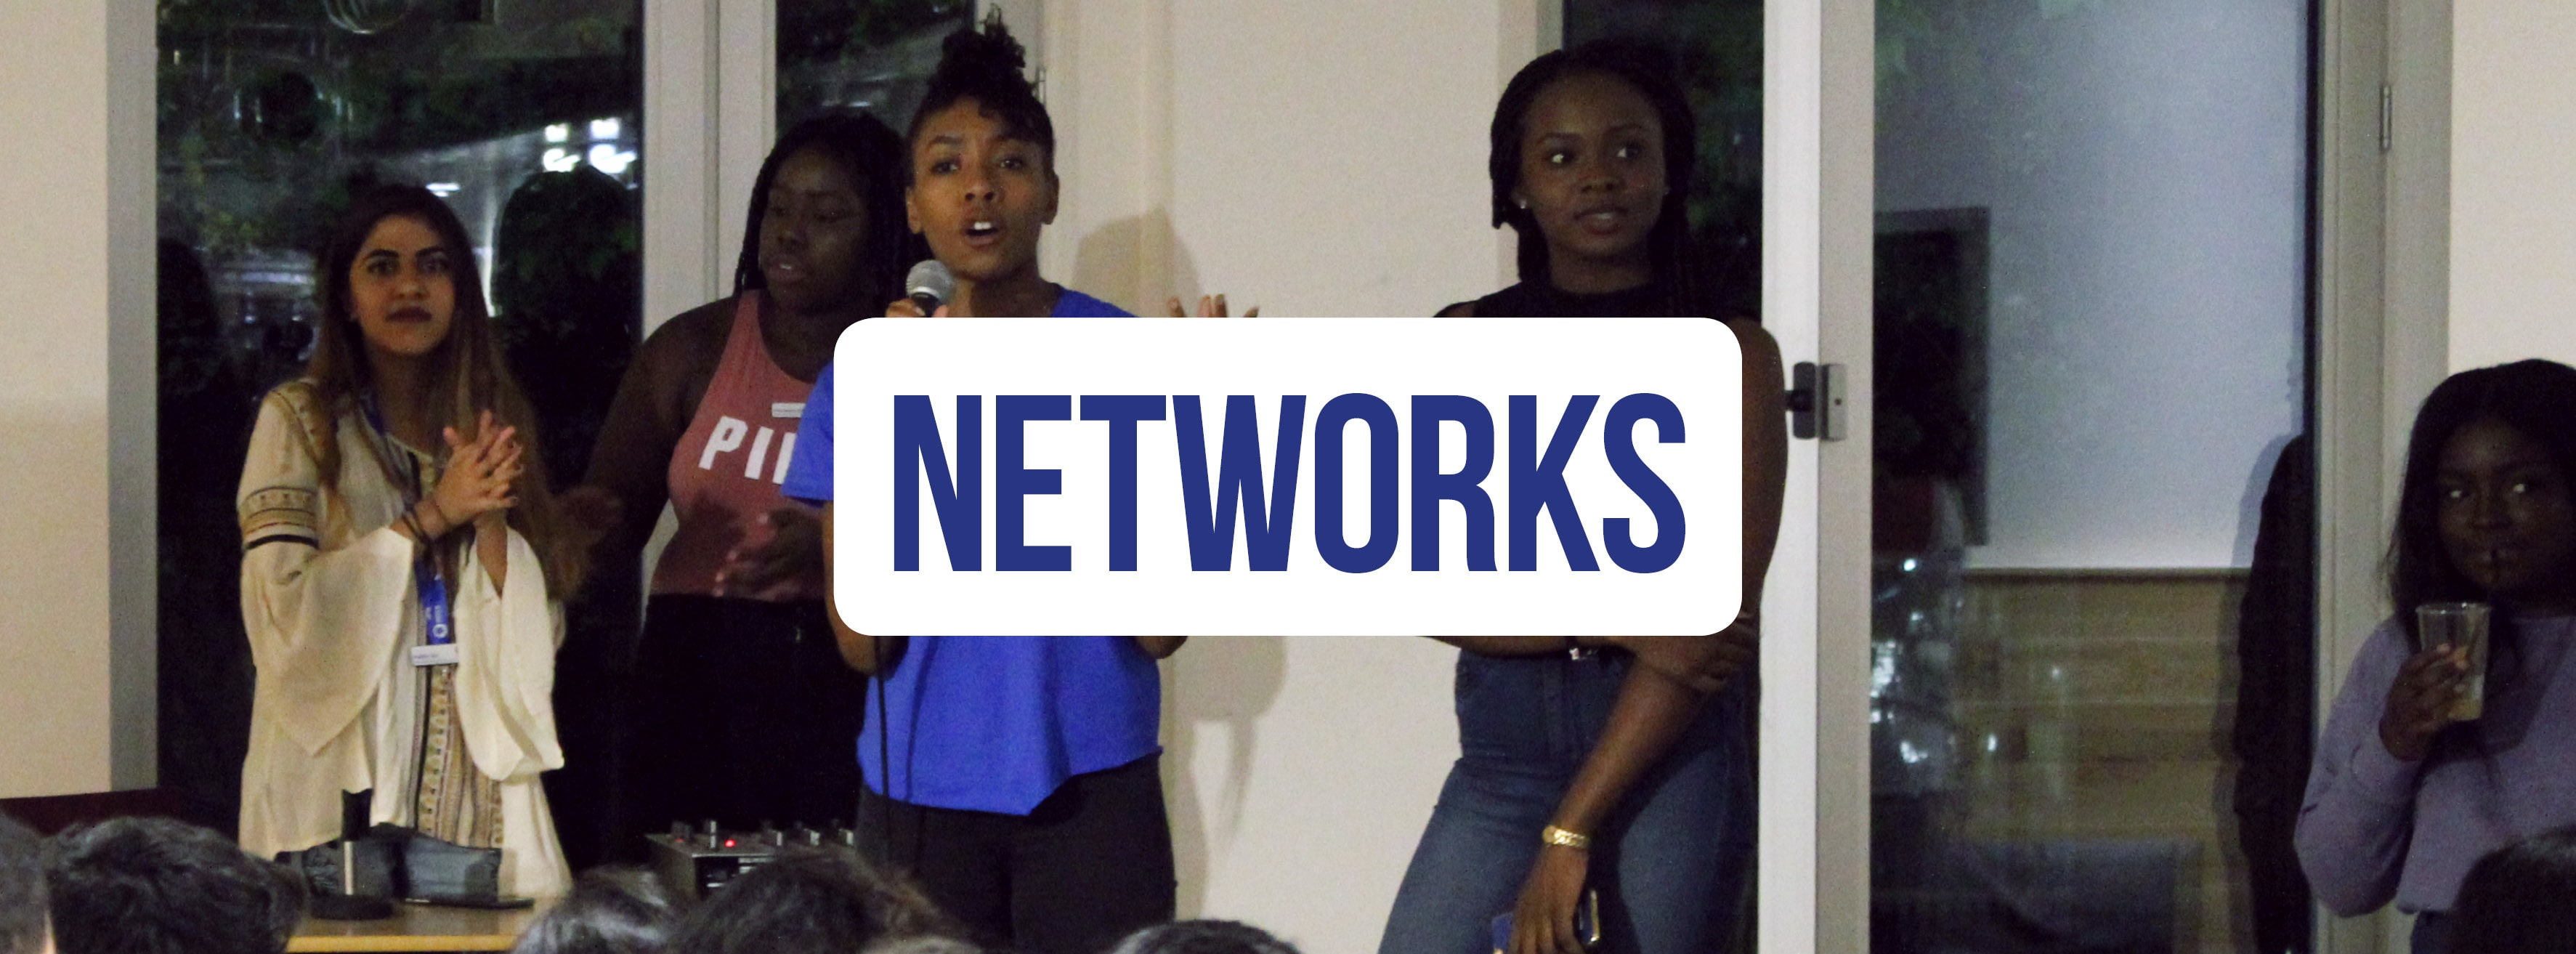 Banner with the word 'networks' with students making a speech in the background